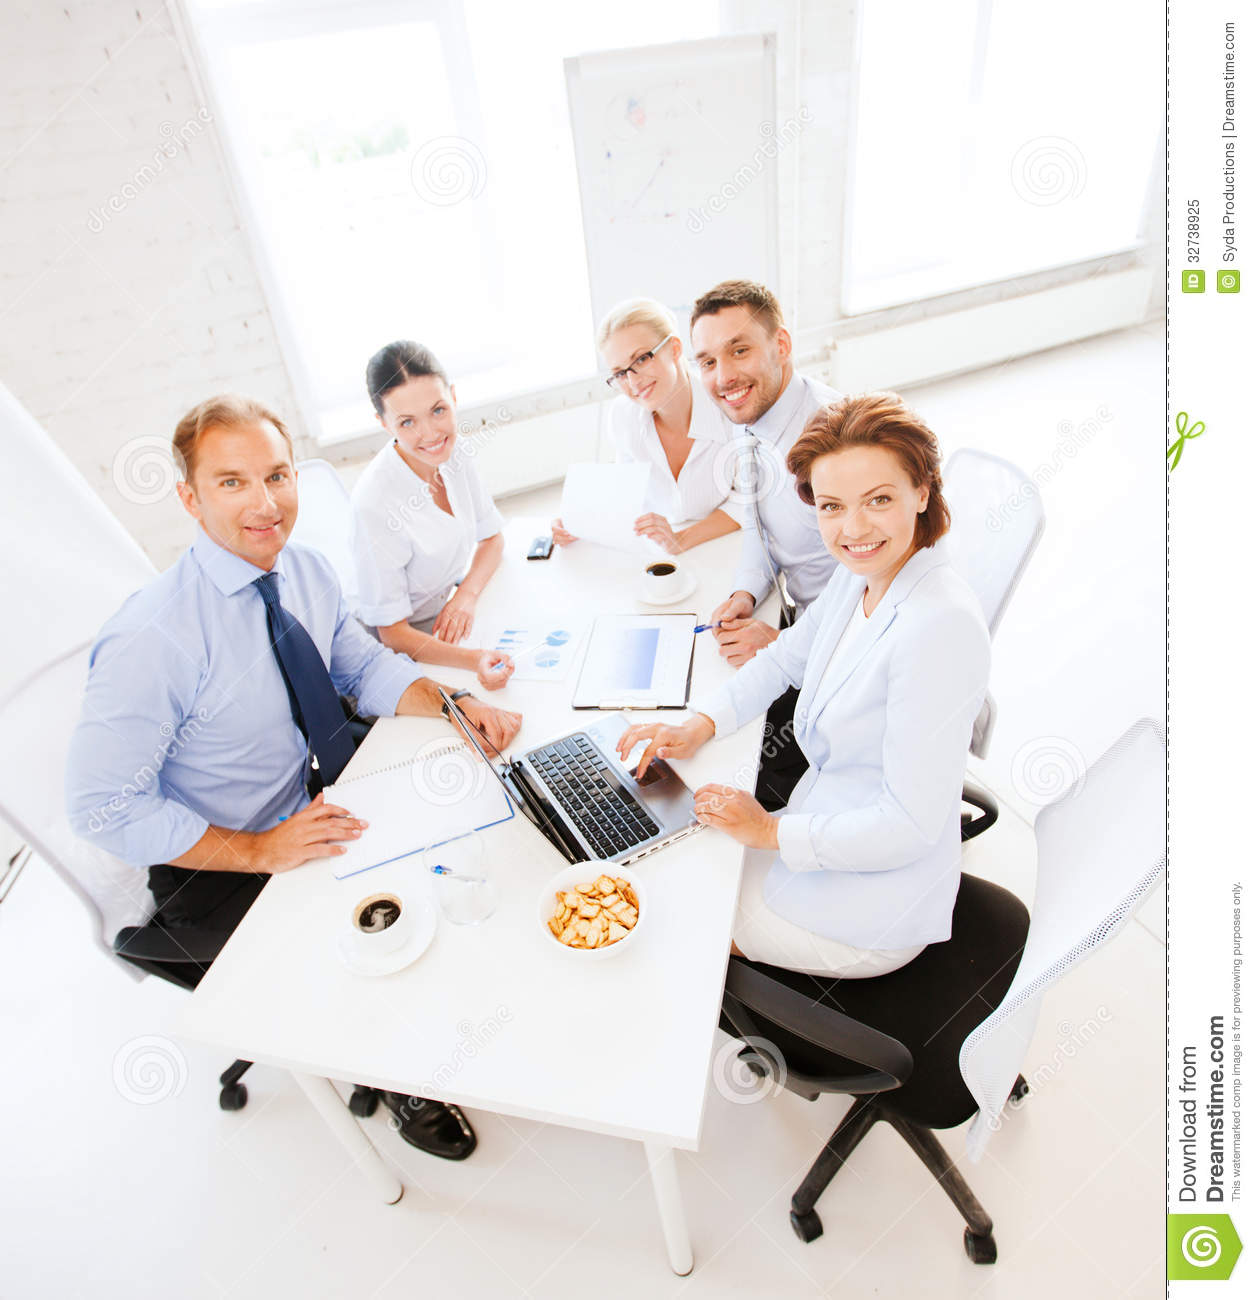 Business Team Having Meeting In Office Stock Image - Image ...